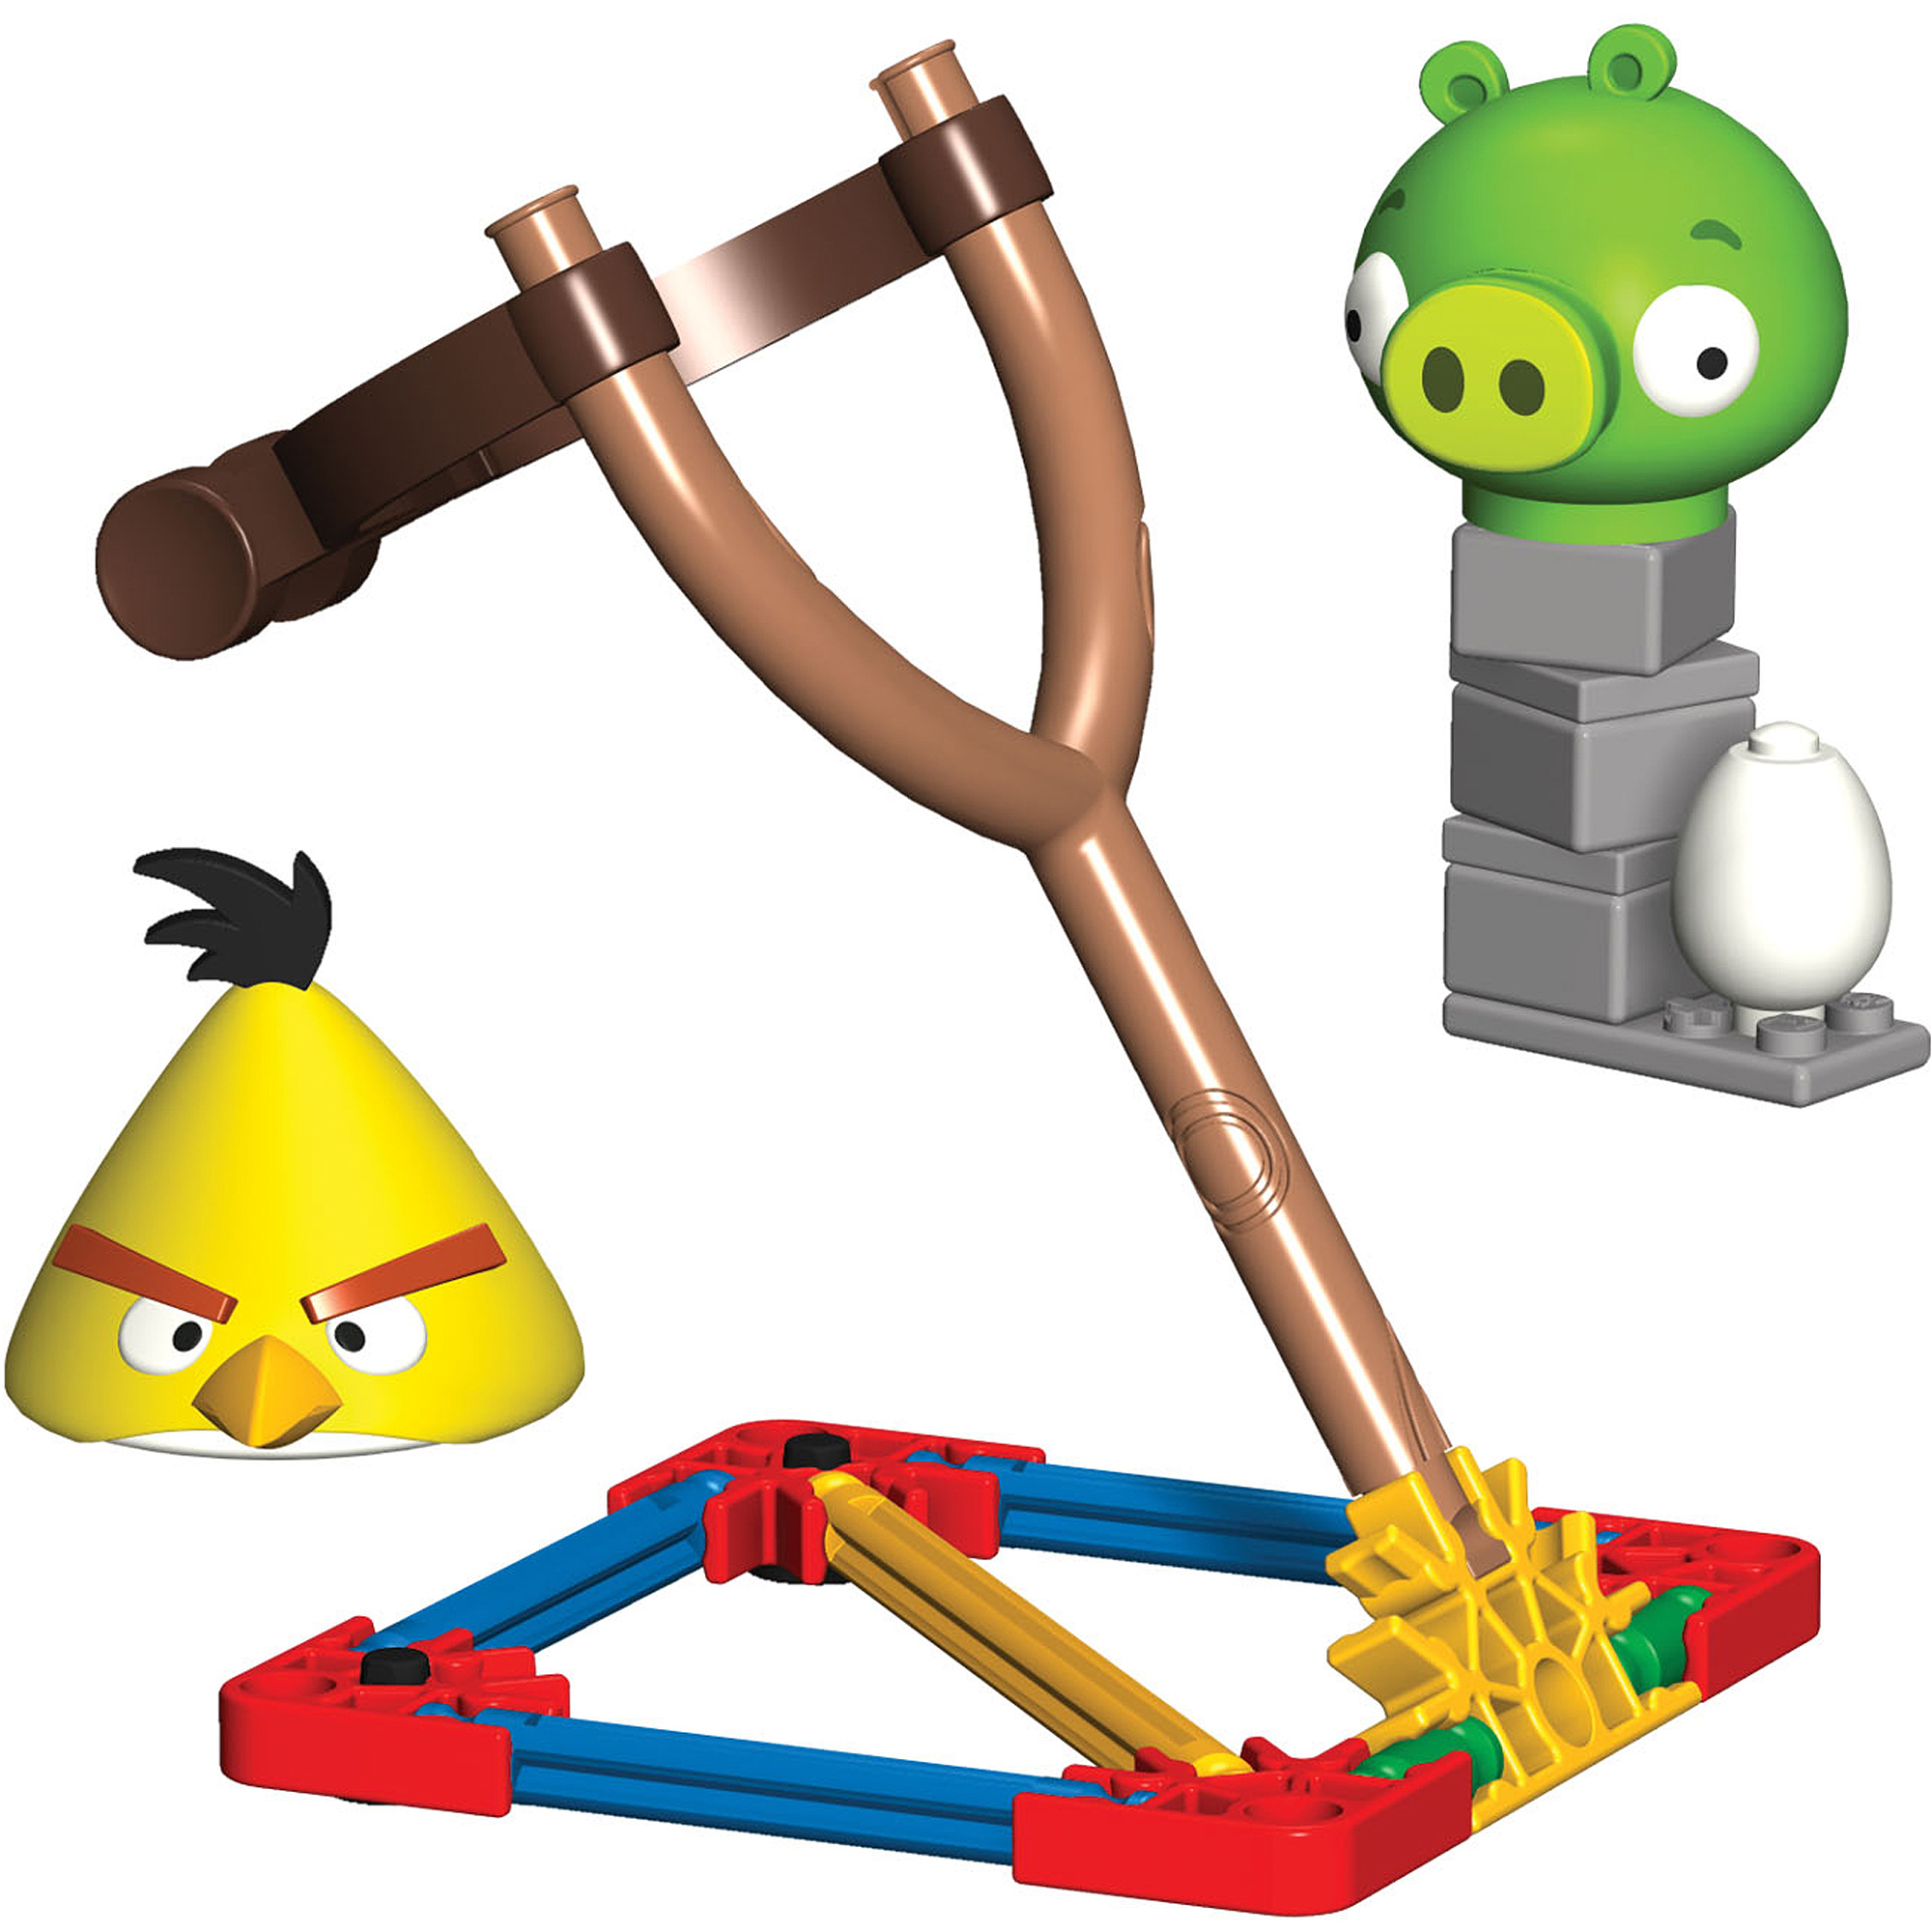 K'NEX Angry Birds Intro Building Set: Yellow Bird vs. Medium Minion Pig